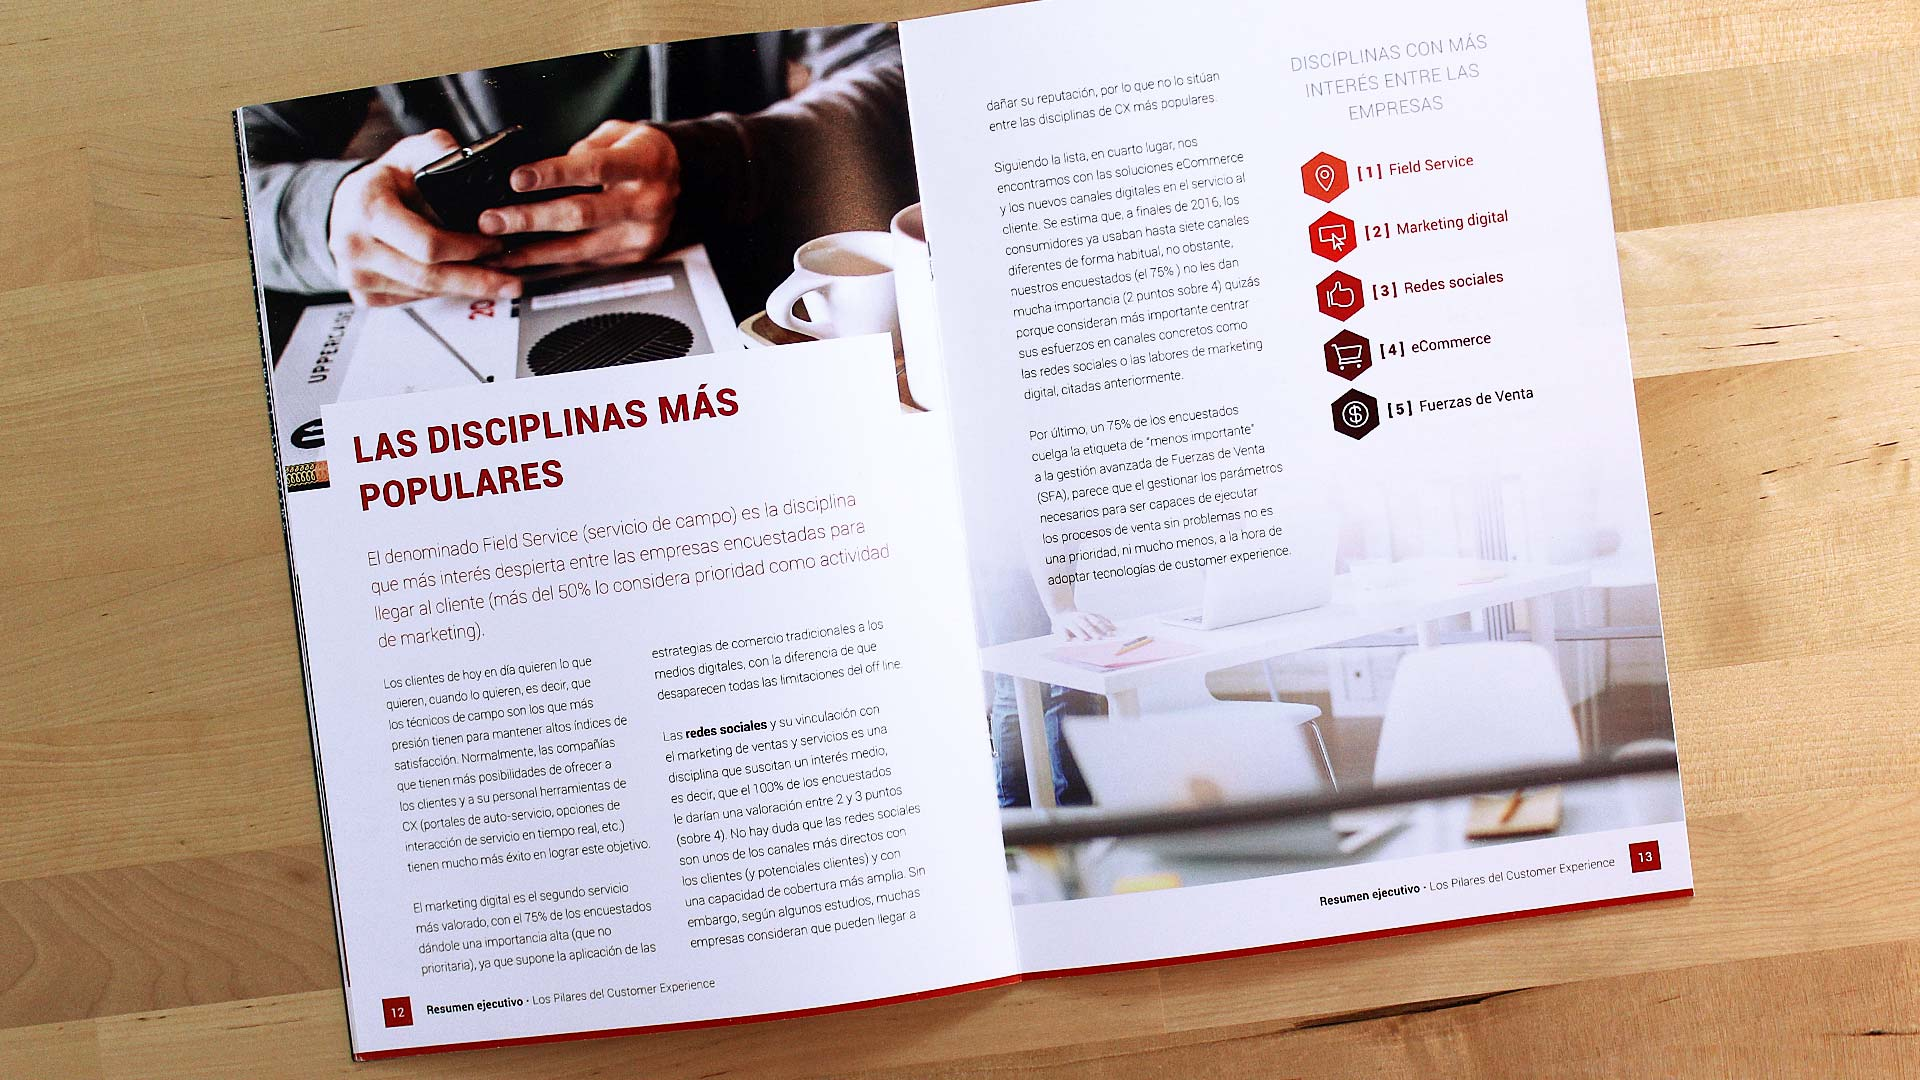 oracle-content-marketing-pilares-customer-experience-2017-07